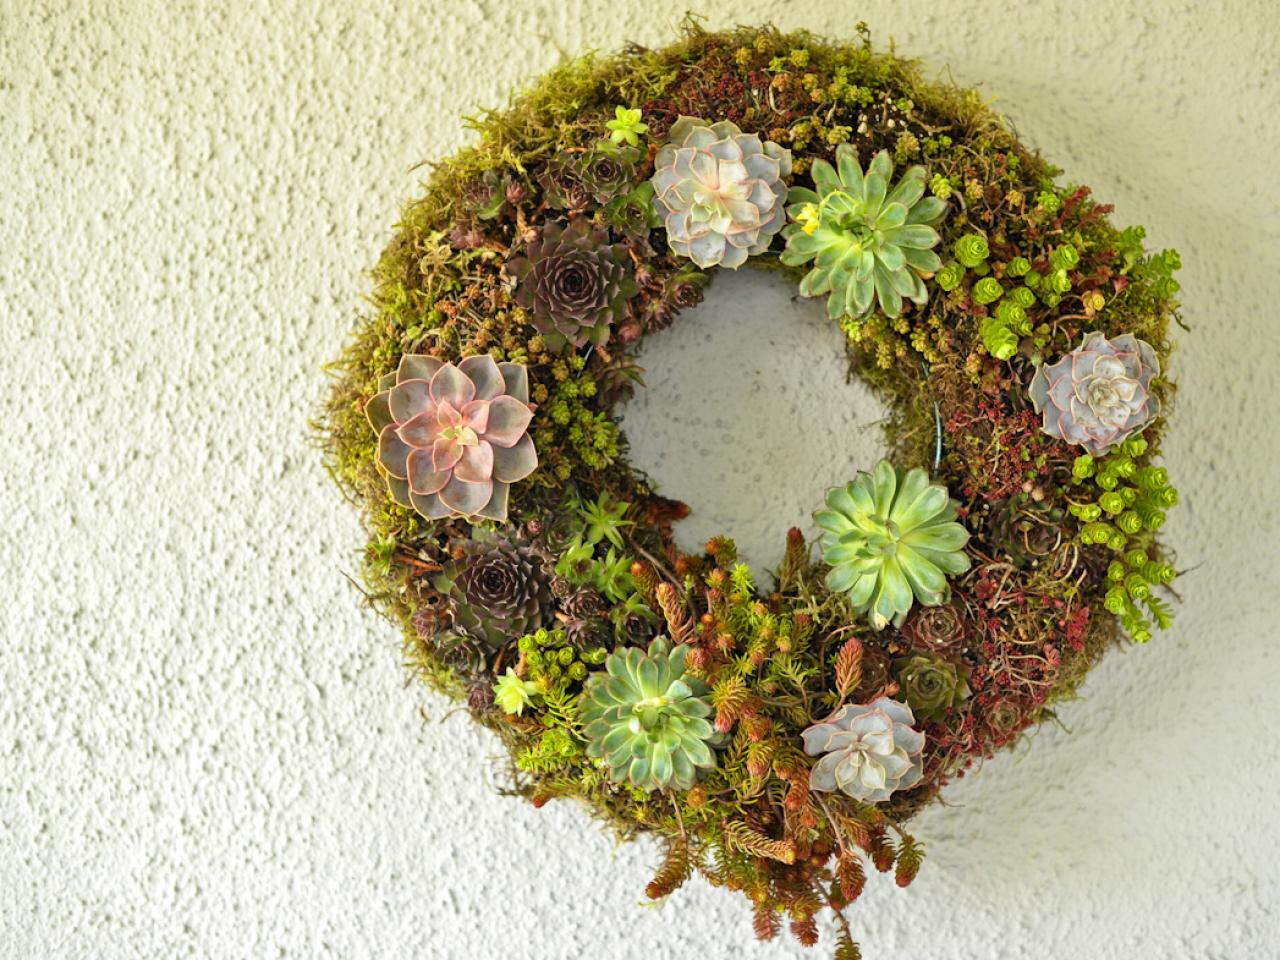 Make A Living Wreath For Spring HGTV